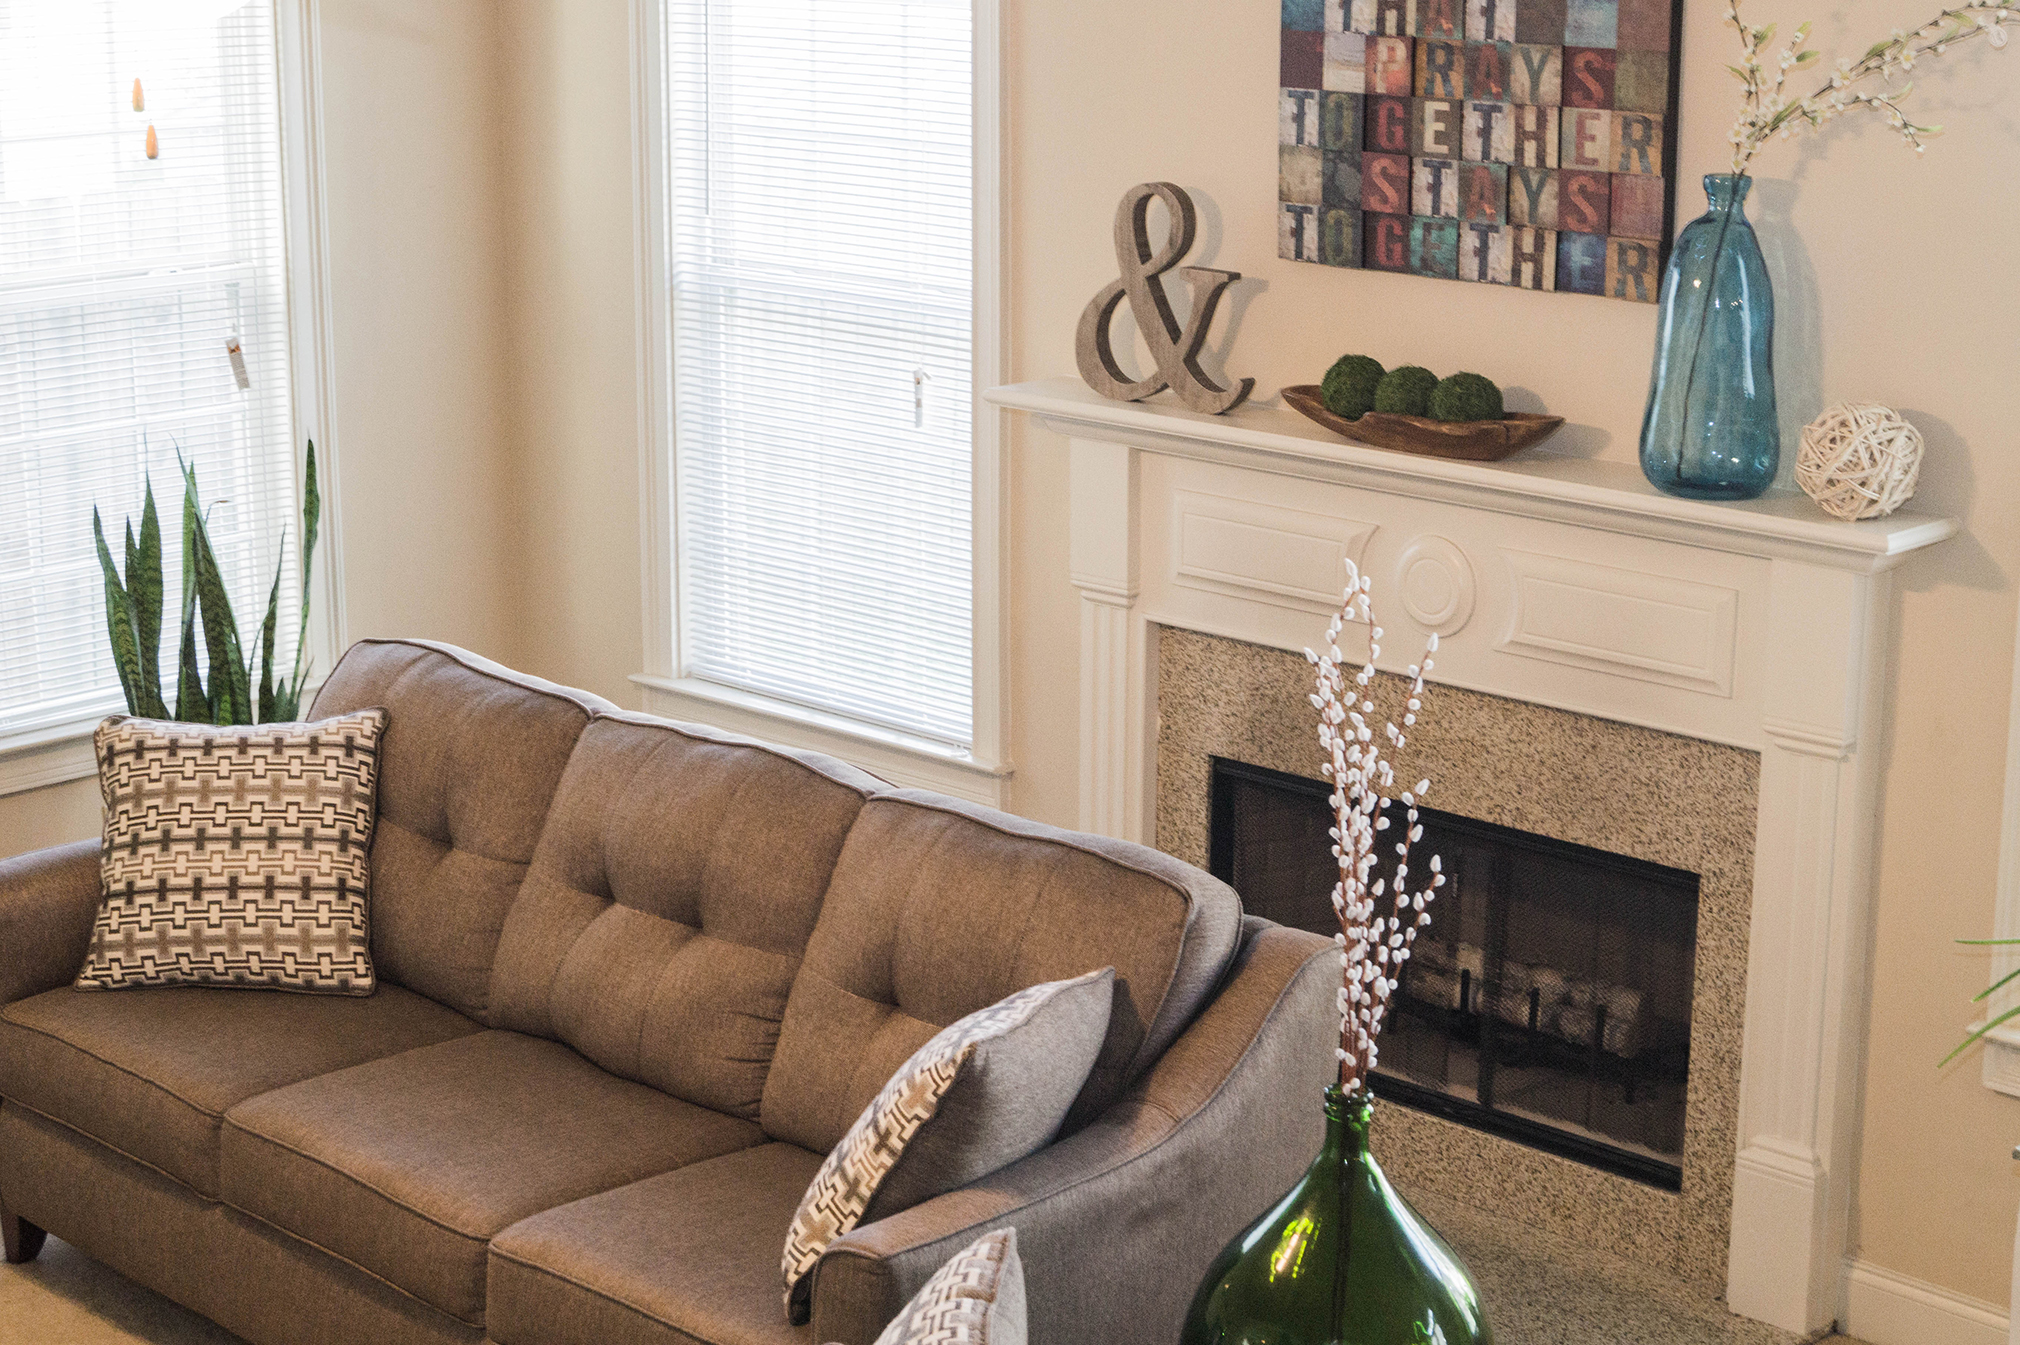 2017 Spring Home Tour - Family Room Mantel Update - www.stage-presents.com